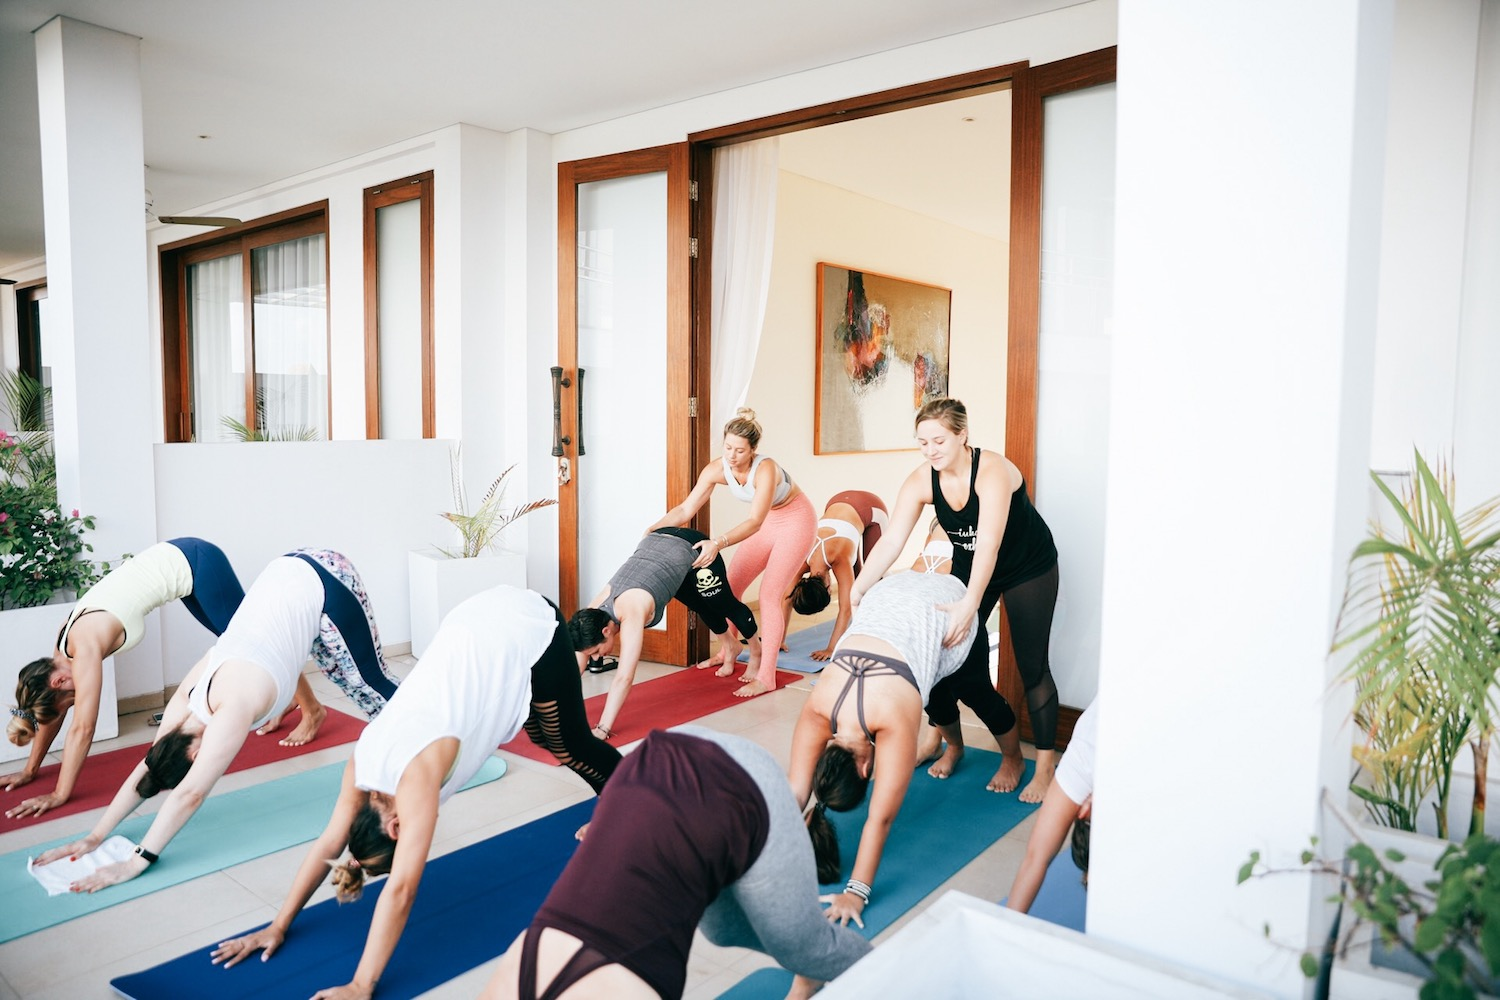 Yoga LimitLes in Bali